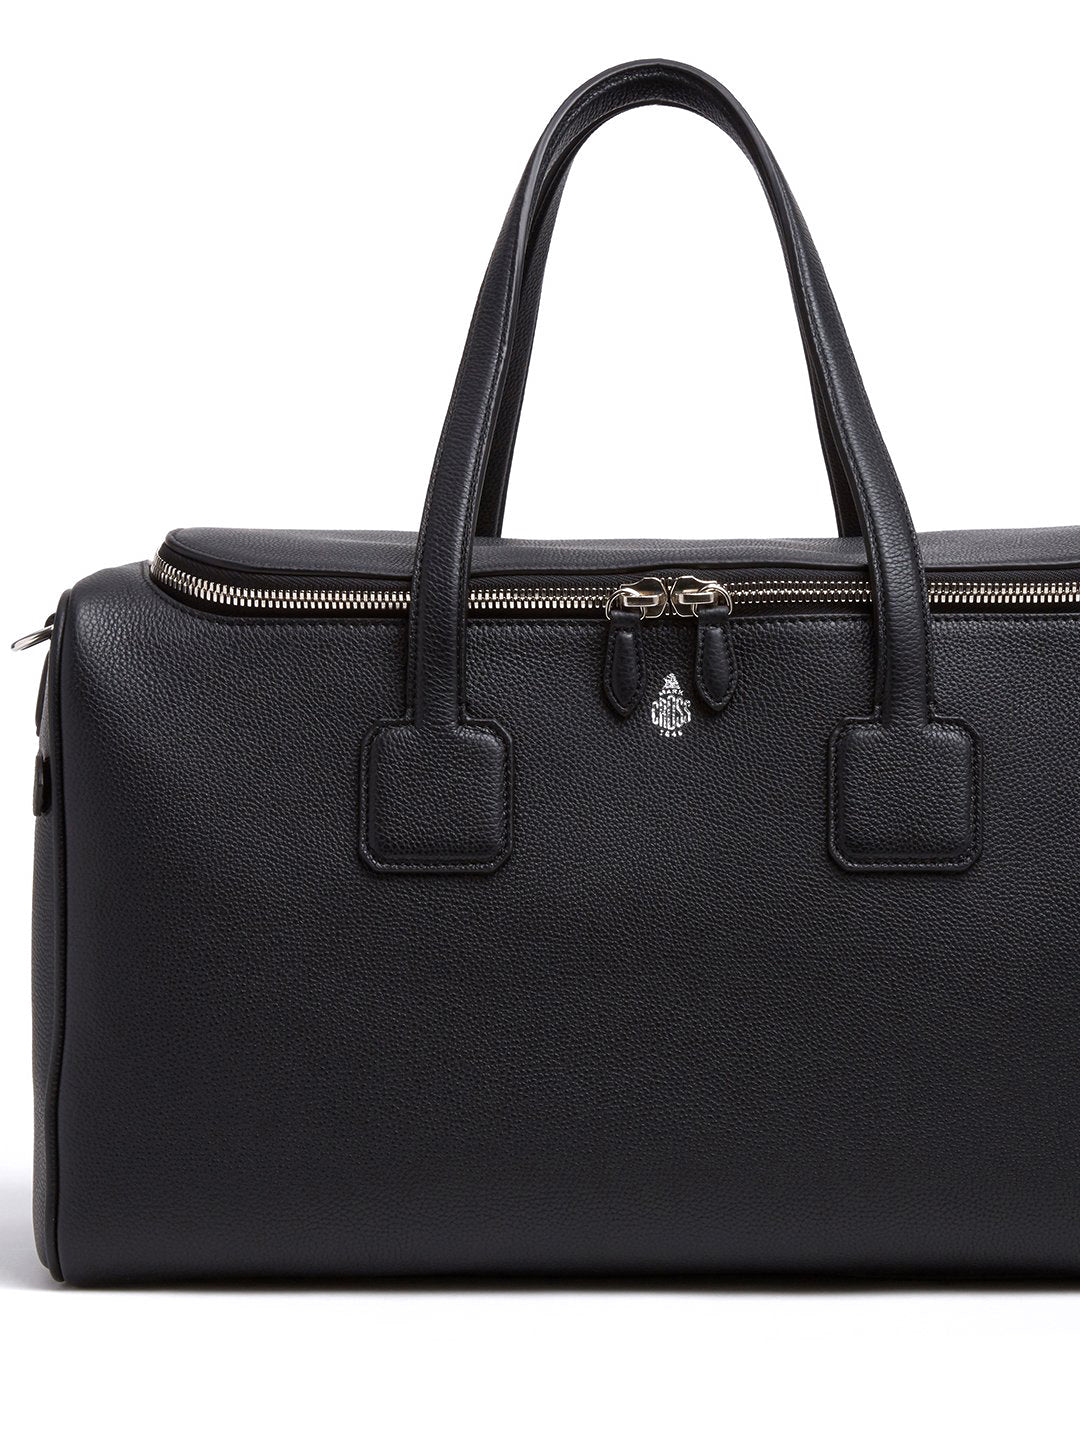 Mark Cross Henry Leather Sports Duffle Bag Tumbled Grain Black Detail